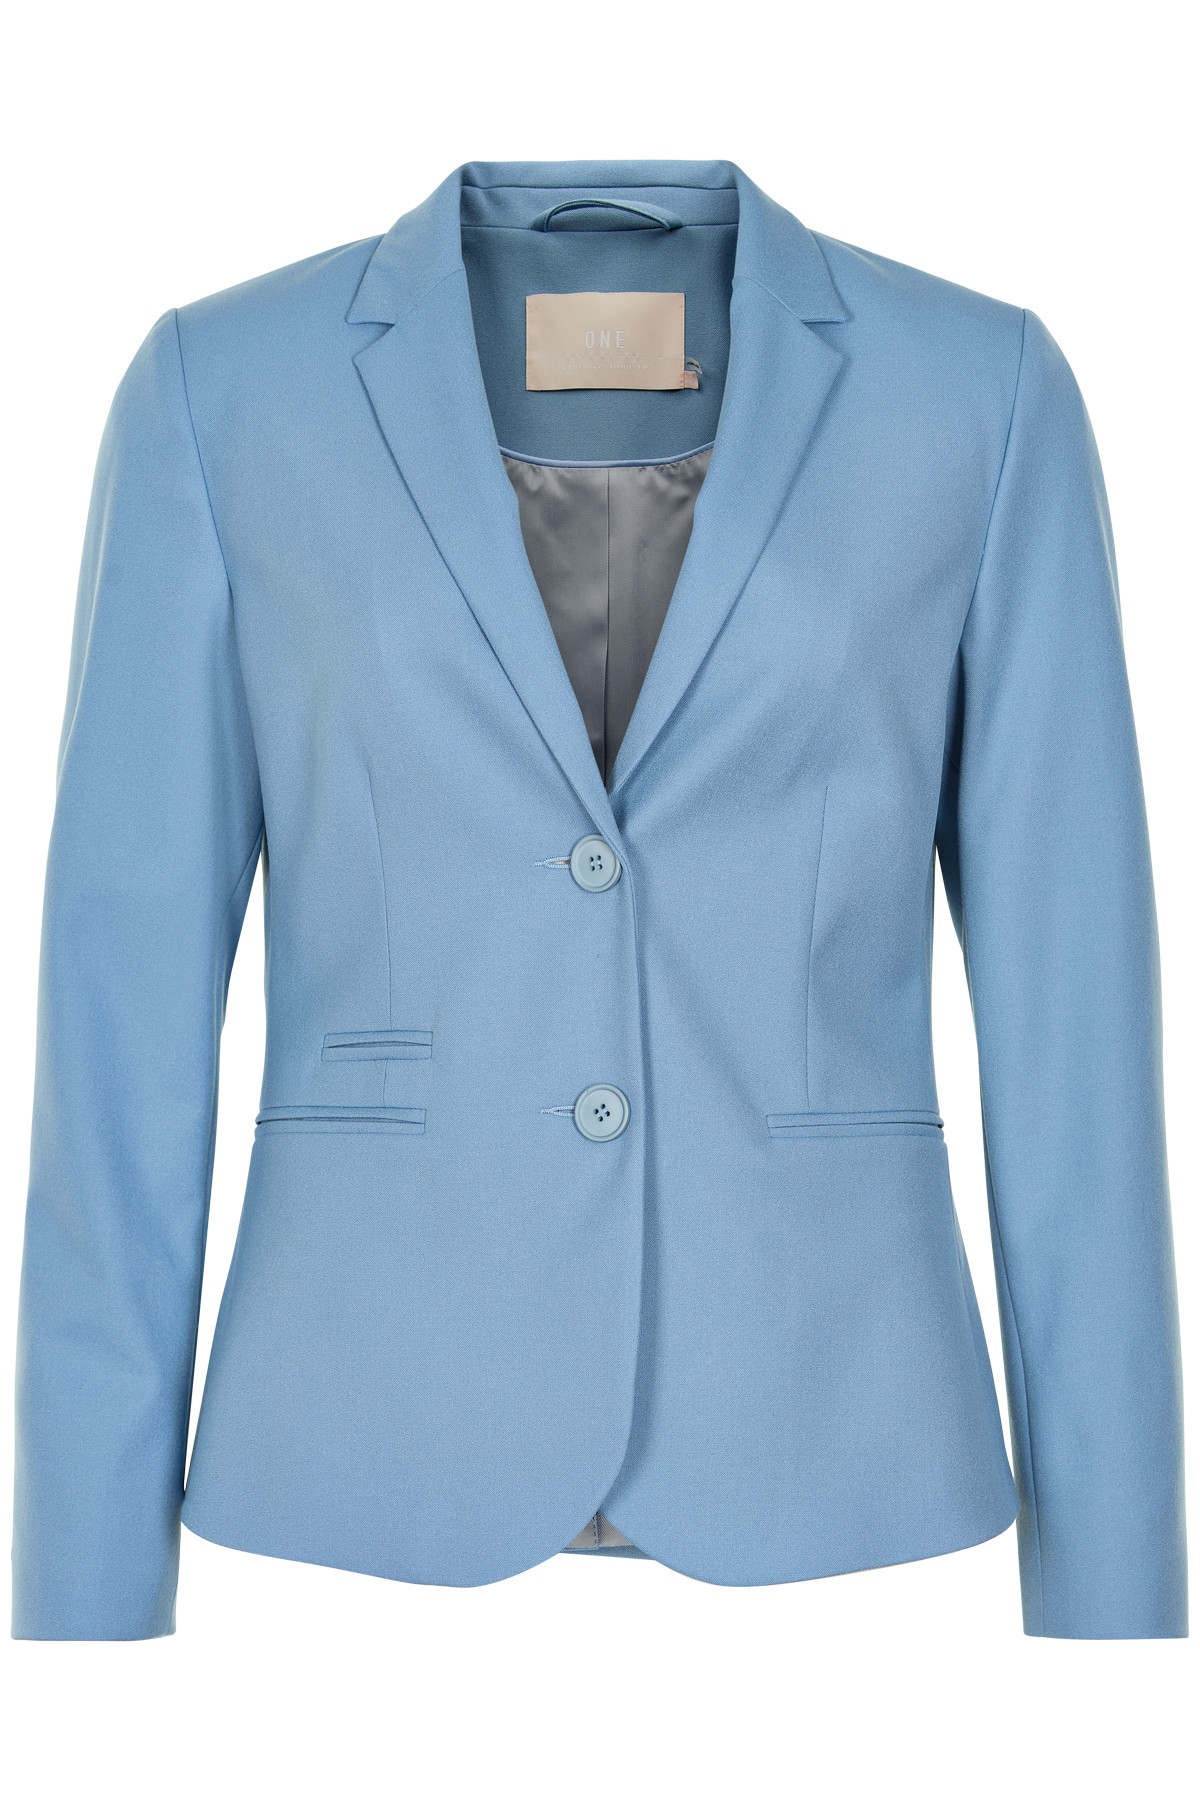 Image of   KAREN BY SIMONSEN SYDNEY BLAZER 10102089 (Light Denim Blue 40076, 34)